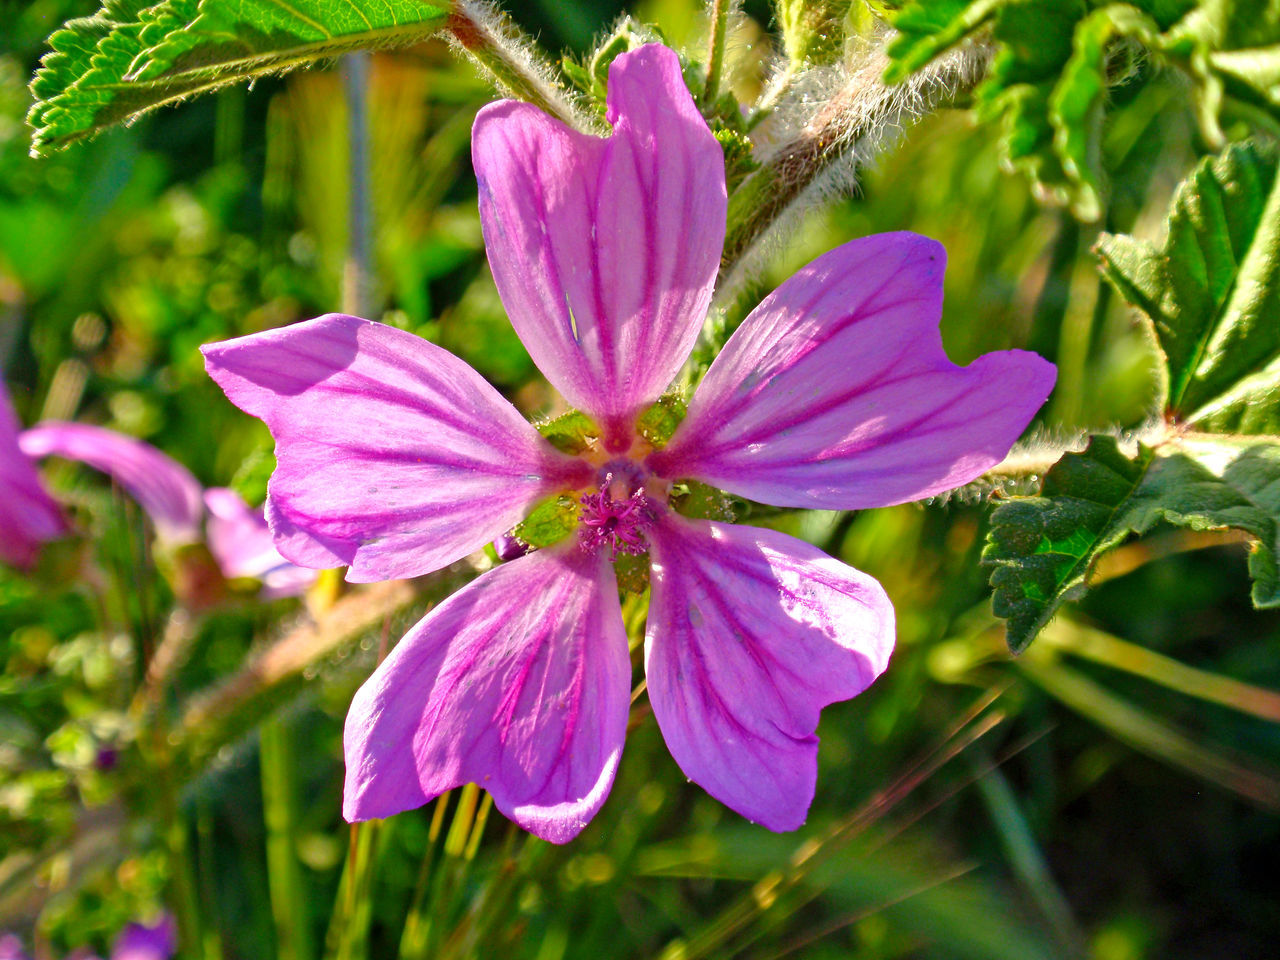 Beauty In Nature Blooming Close-up Common Mallow Day Flower Flower Head Fragility Freshness Growth Mallow Mallow Flower Malva Malva Sylvestris Medicinal Herb Medicinal Plant Nature No People Outdoors Petal Pink Color Plant Purple Water